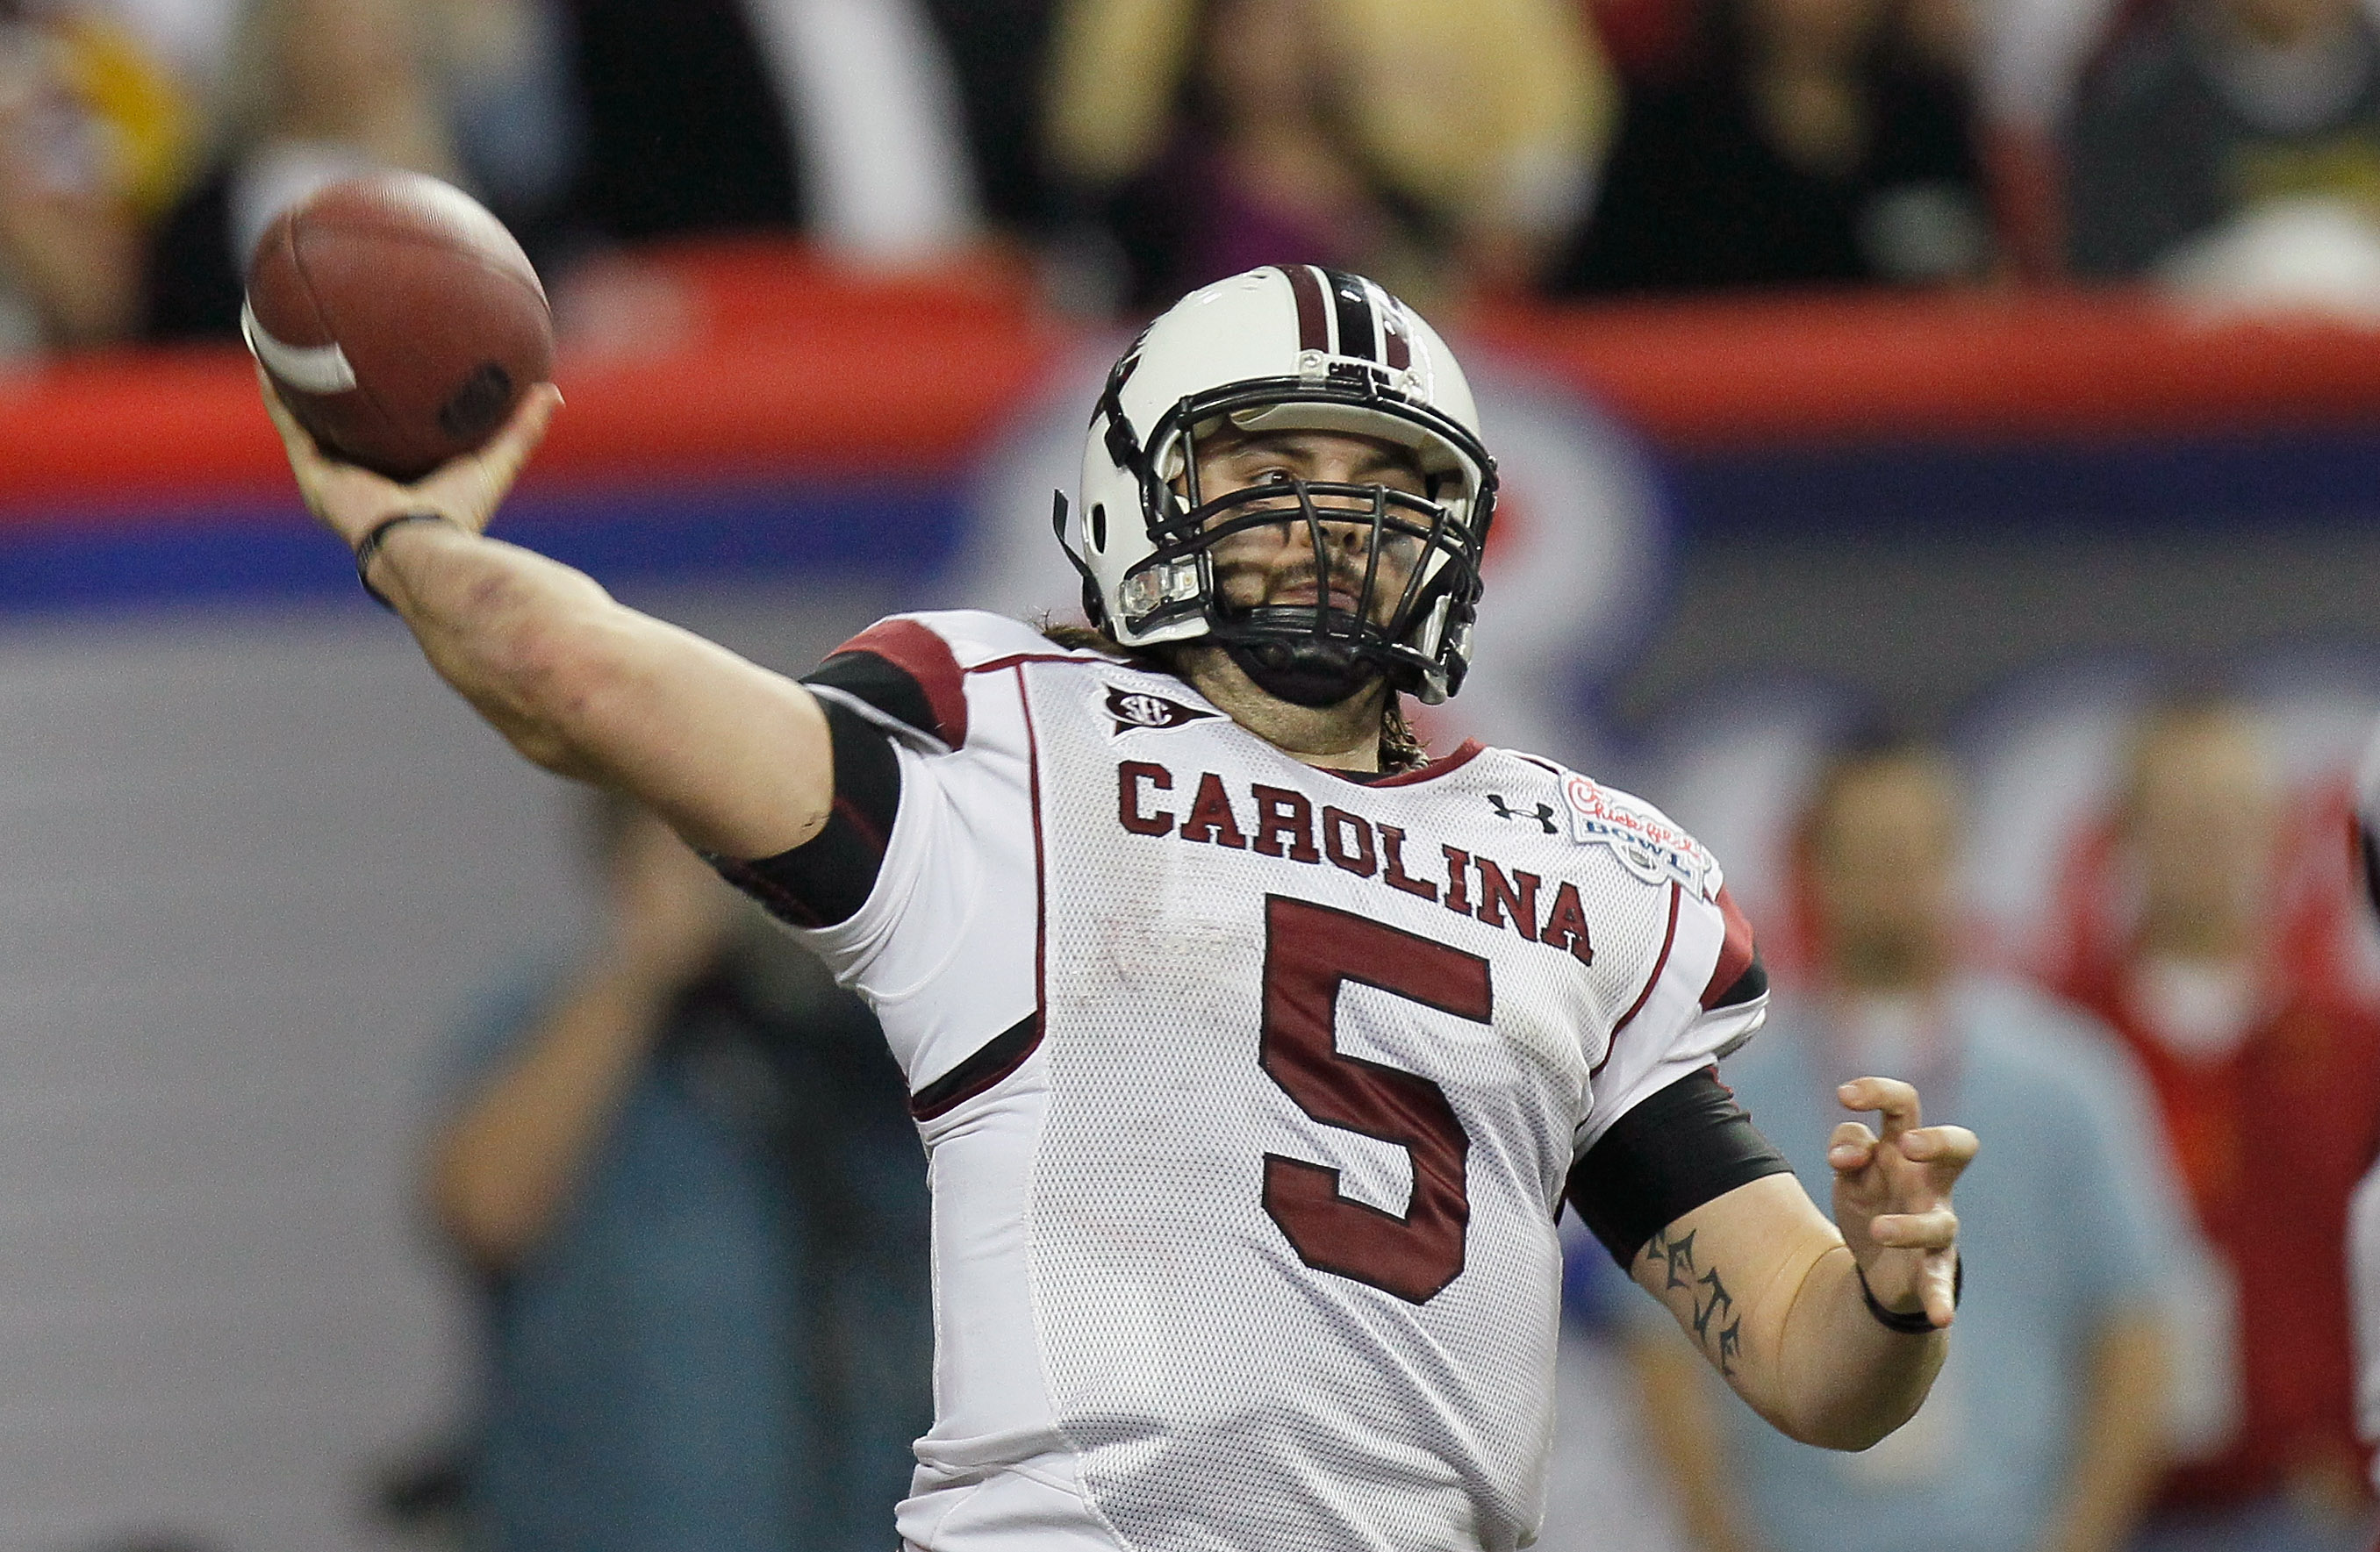 Stephen Garcia has been give one final chance to be the starting quarterback at South Carolina in 2011.